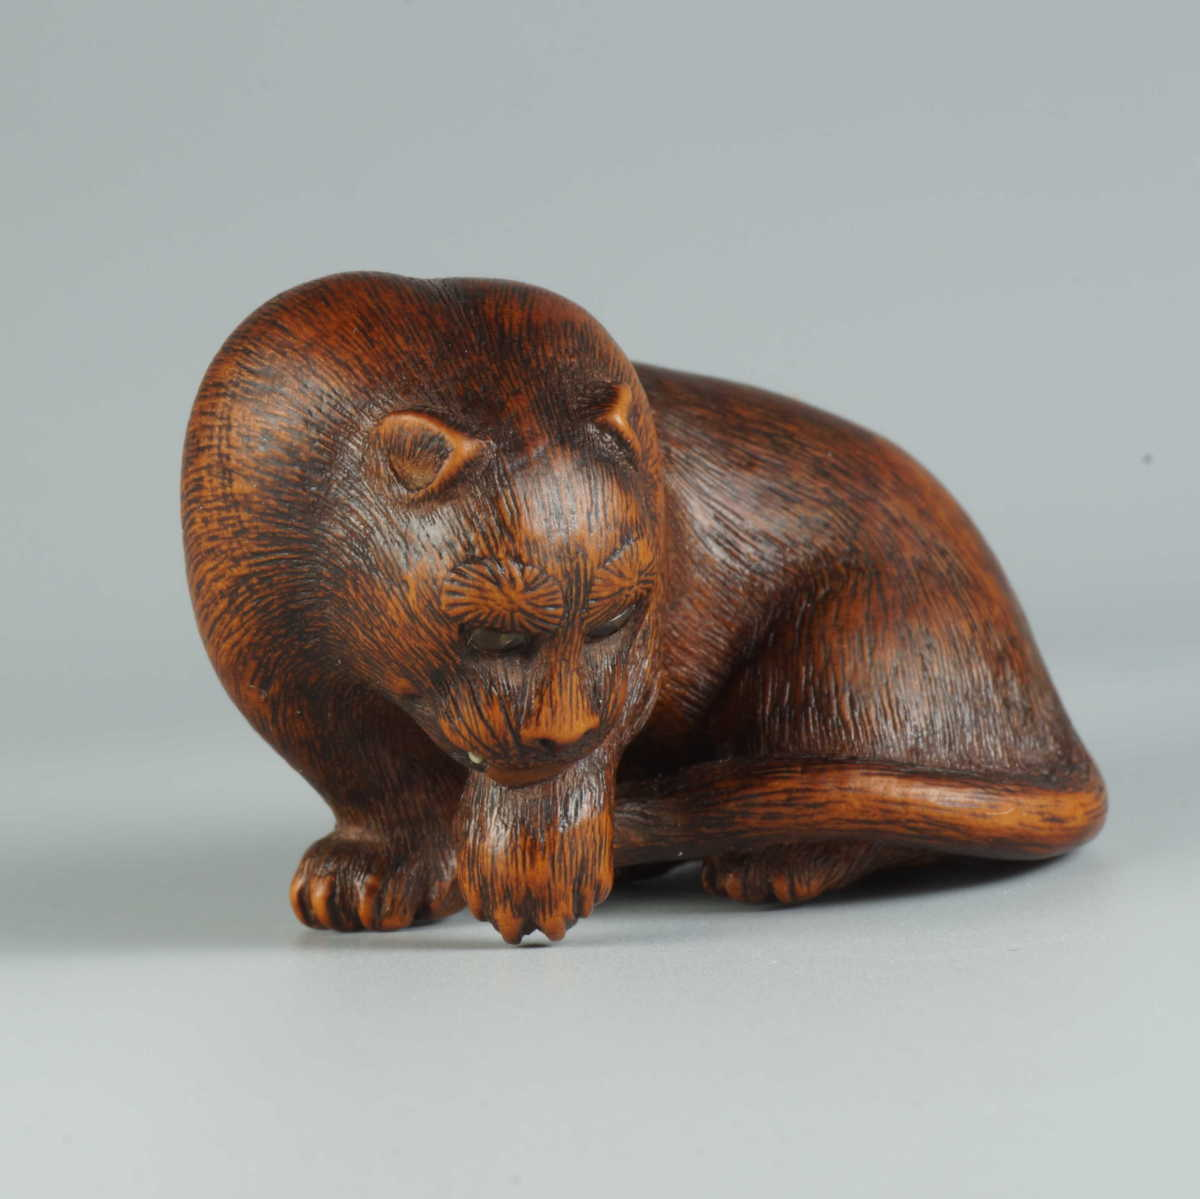 Tomokazu wood netsuke of a wild cat